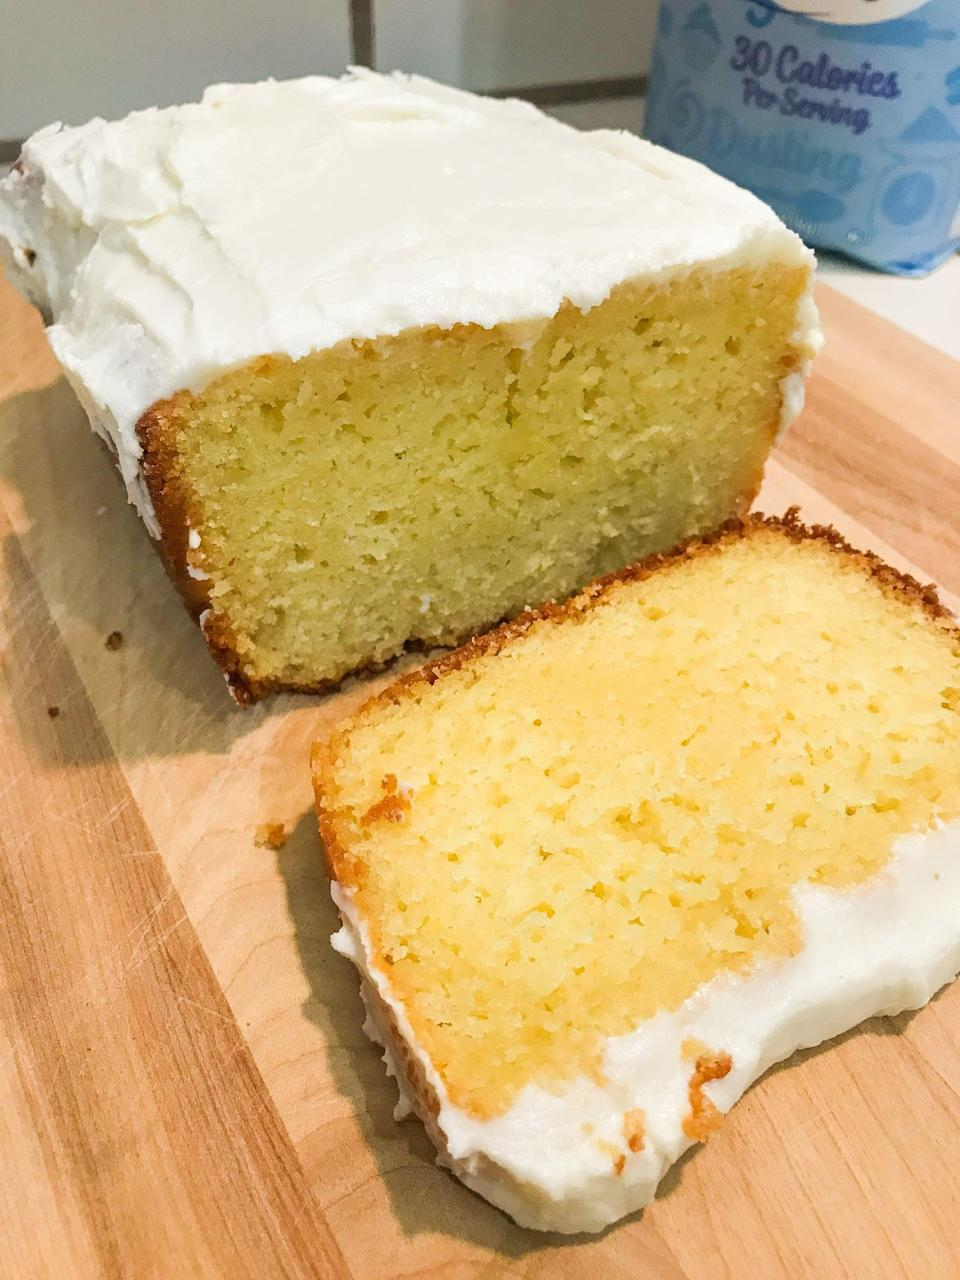 """<p>Make the famed lemon pound cake at home with this tasty recipe. With simple ingredients and easy steps, you won't be able to get enough.</p> <p><strong>Original Starbucks Food:</strong> <a href=""""http://www.starbucks.com/menu/food/bakery/iced-lemon-pound-cake-lb"""" class=""""link rapid-noclick-resp"""" rel=""""nofollow noopener"""" target=""""_blank"""" data-ylk=""""slk:iced lemon pound cake"""">iced lemon pound cake</a></p> <p><strong>Homemade Version:</strong> <a href=""""https://www.popsugar.com/food/starbucks-iced-lemon-pound-cake-copycat-recipe-47885961"""" class=""""link rapid-noclick-resp"""" rel=""""nofollow noopener"""" target=""""_blank"""" data-ylk=""""slk:iced lemon pound cake"""">iced lemon pound cake</a></p>"""